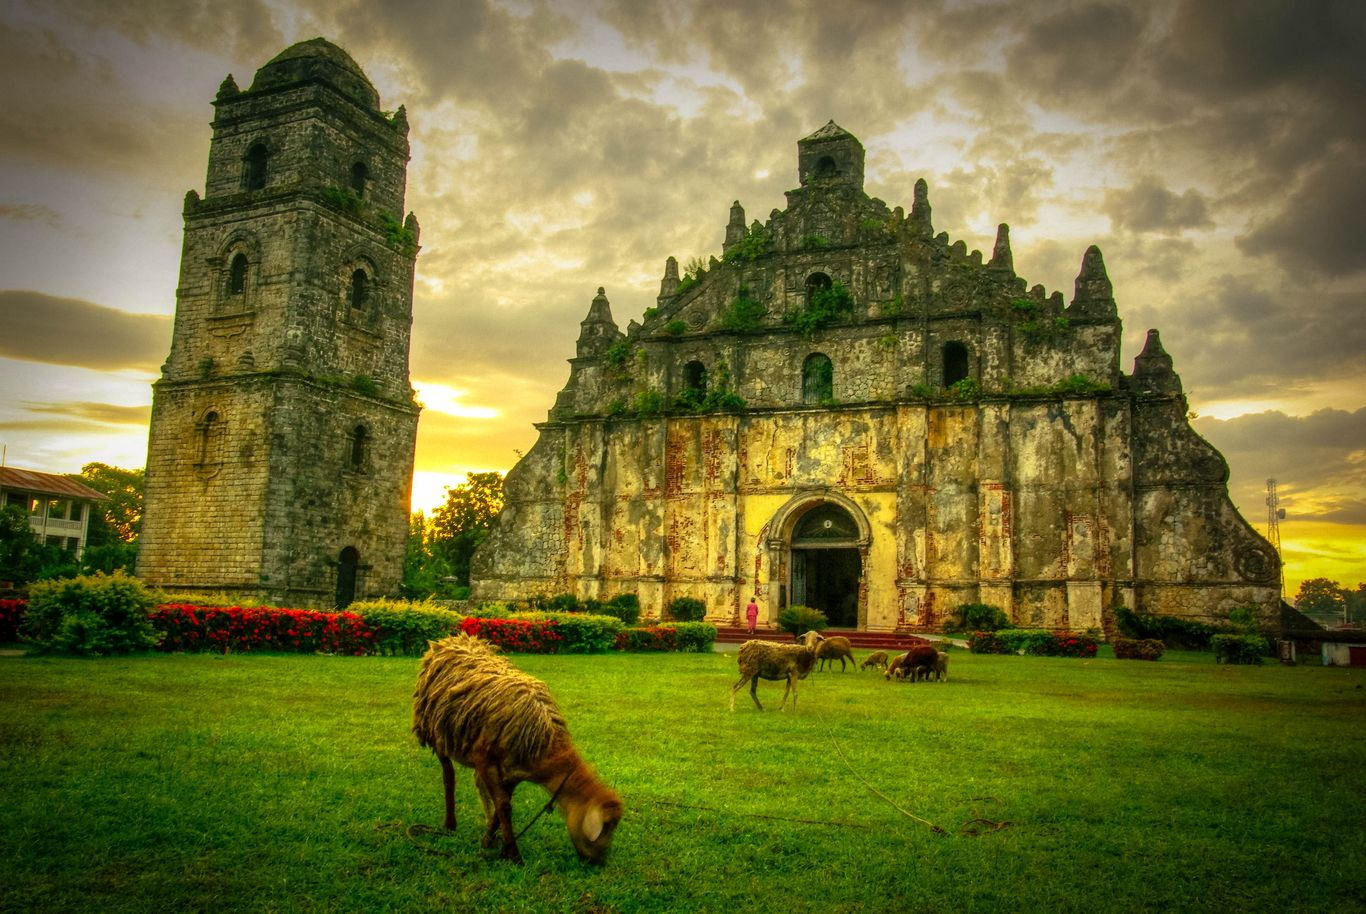 The stone bell tower and facade of the old Paoay Church, one of the UNESCO World Heritage Sites in the Philippines